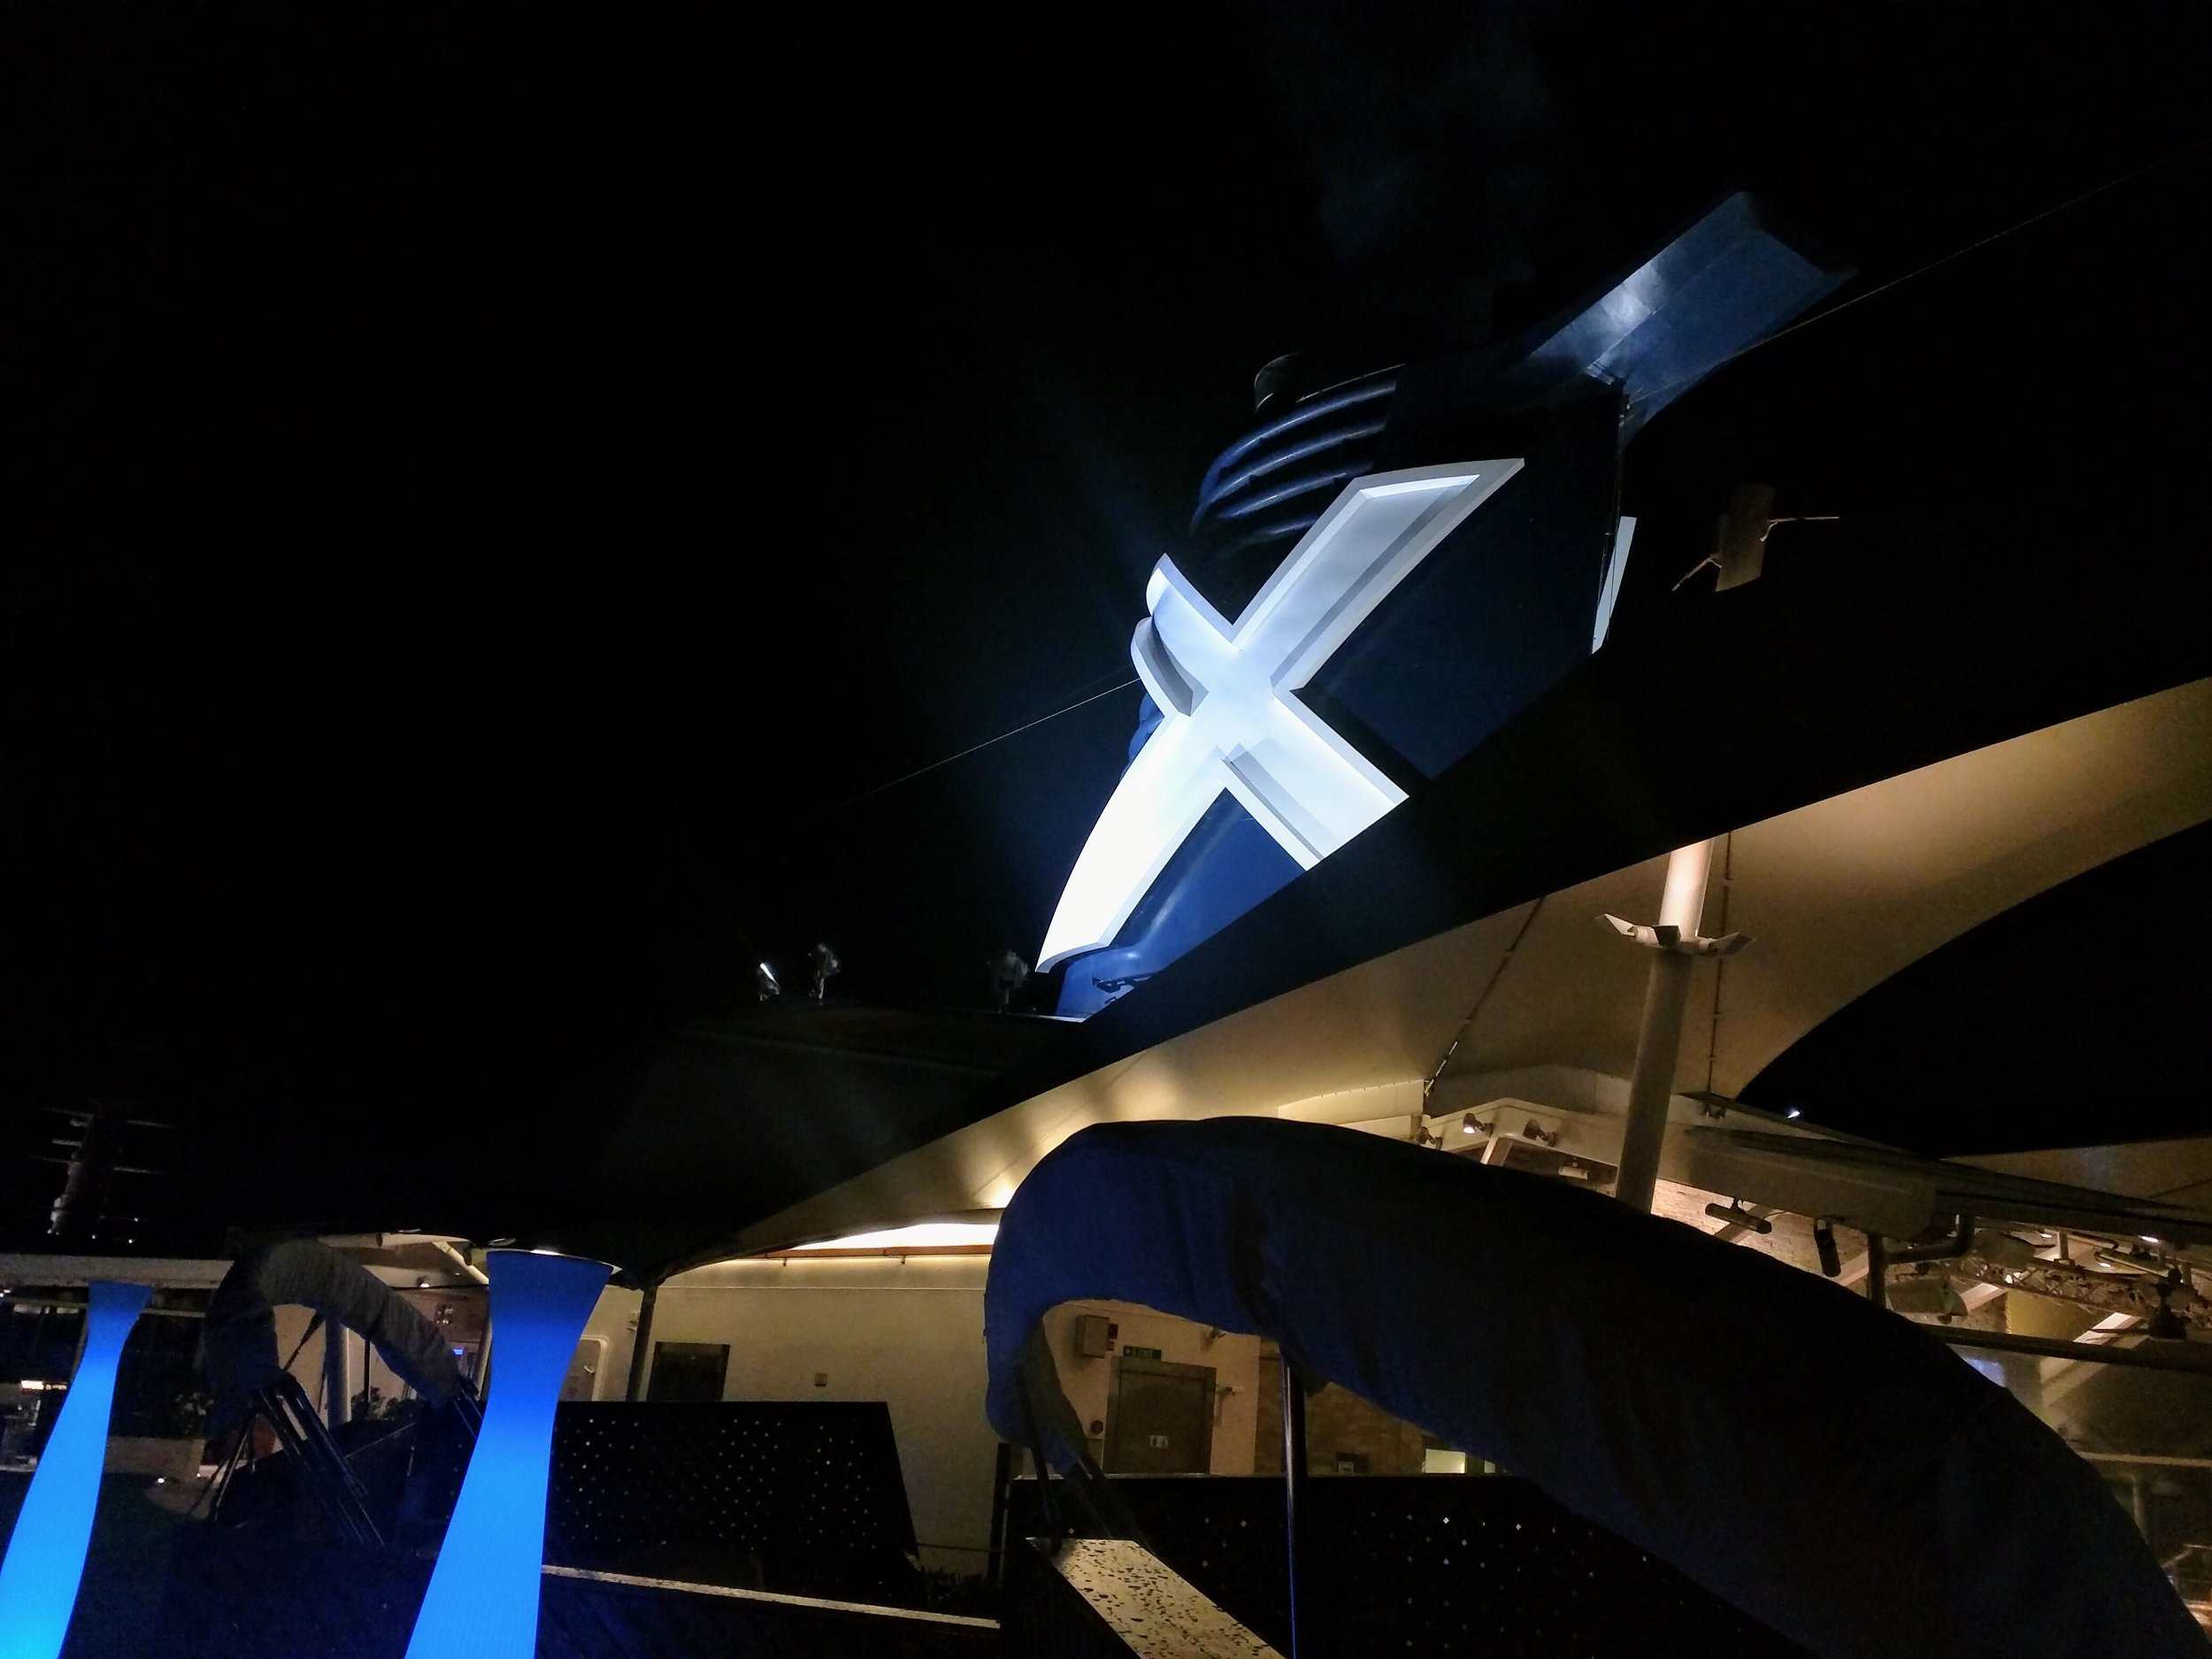 Celebrity Silhouette Smoke Stack with Signature X